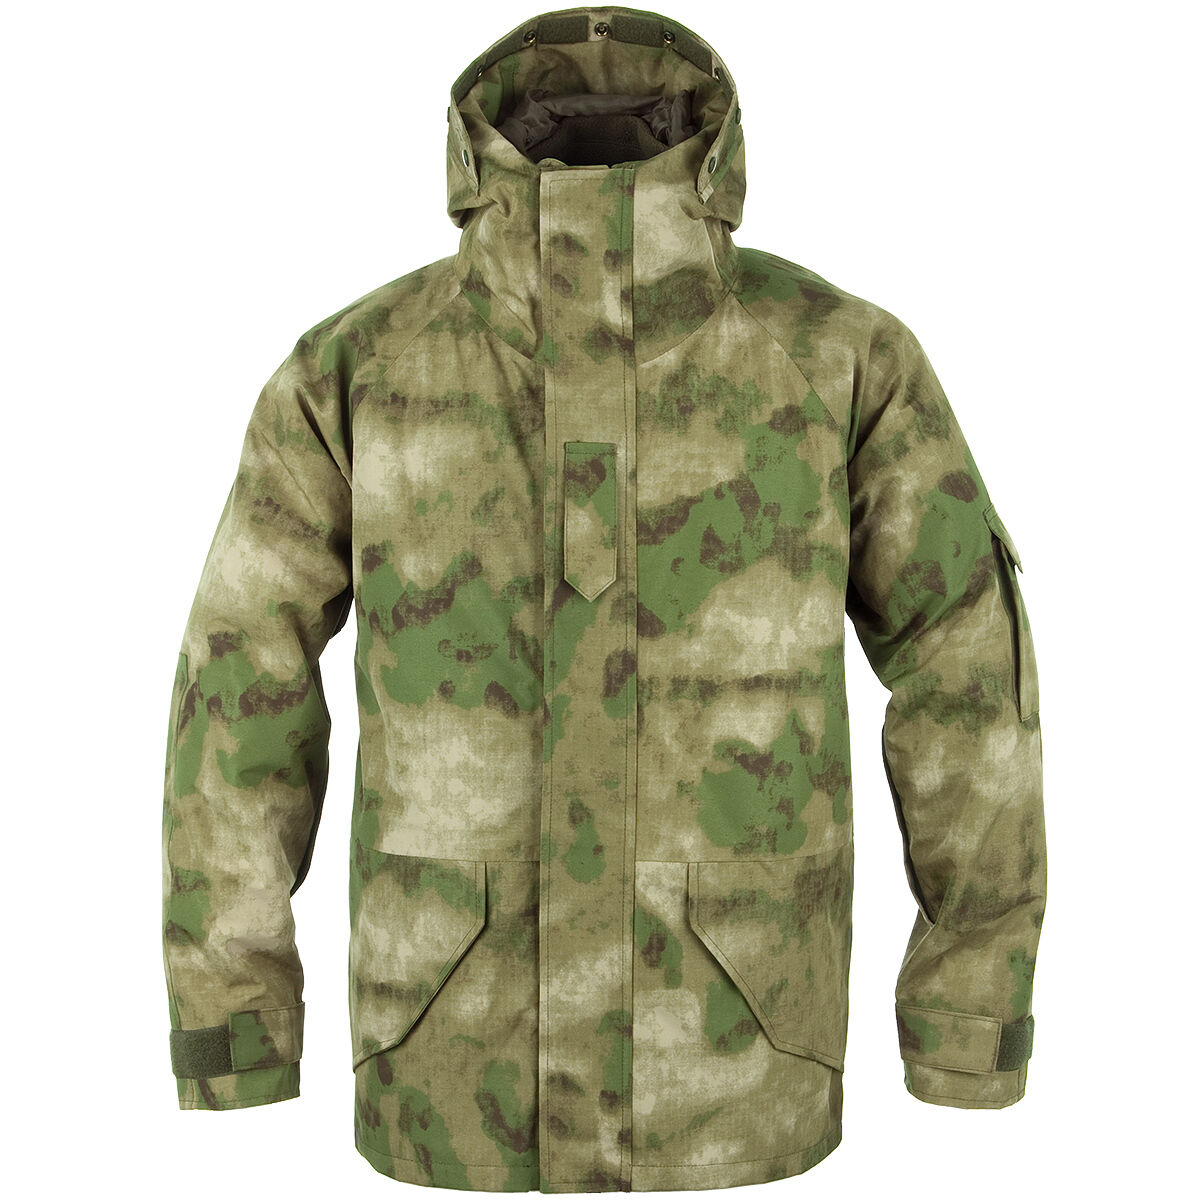 US Cold Wet Weather Umidità Protezione Parka A GIACCA IN PILE VERDE OLIVA MIL TACS FG Medium M